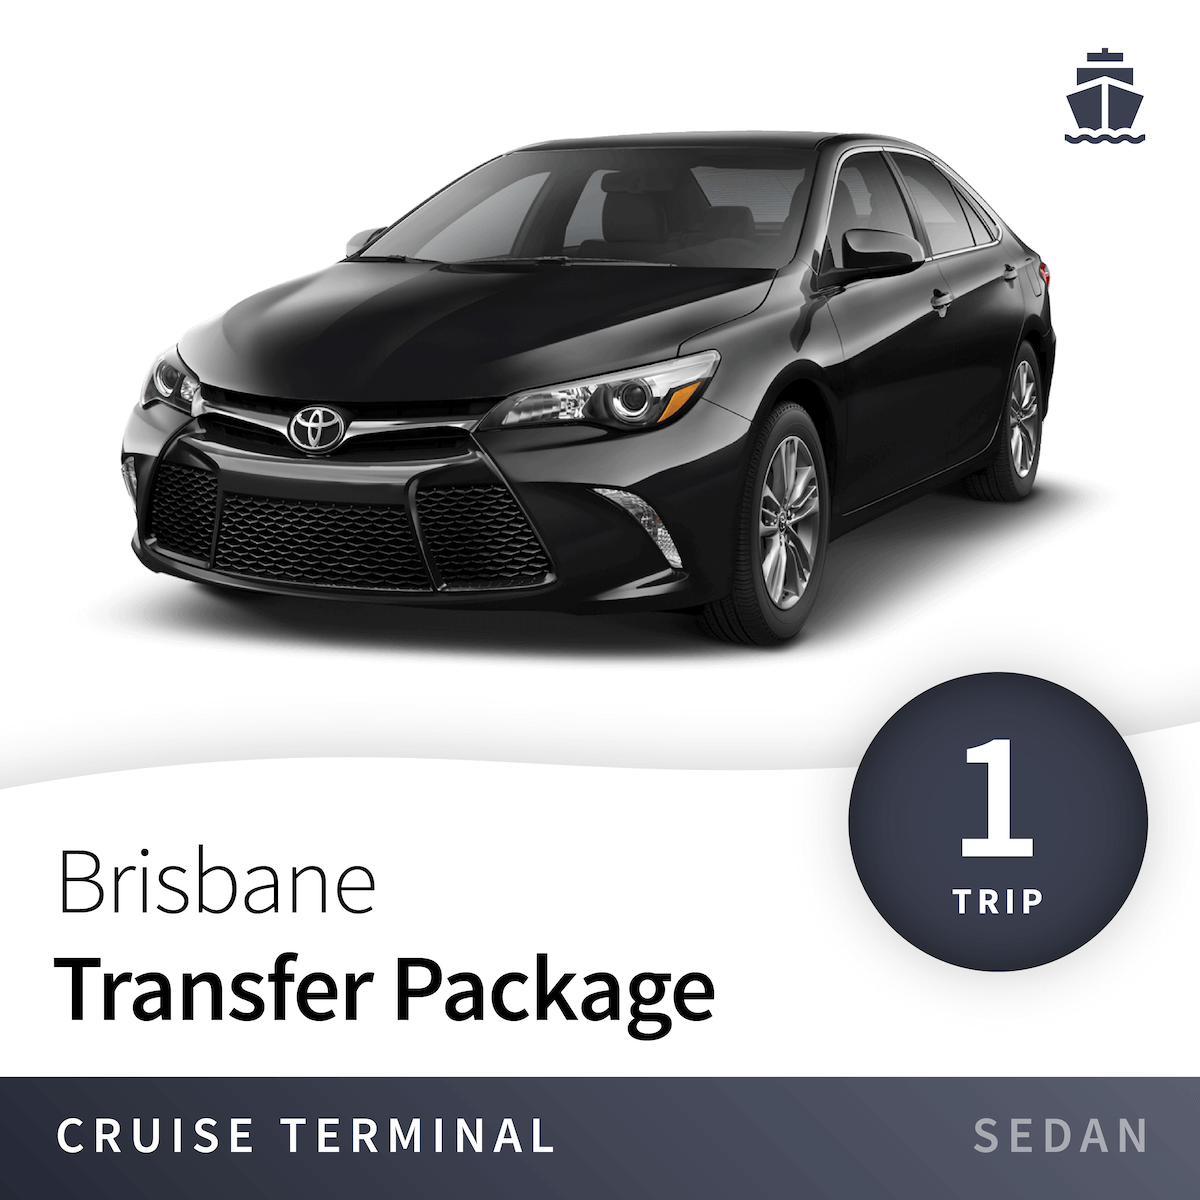 Brisbane Cruise Terminal Transfer Package - Sedan (1 Trip) 1